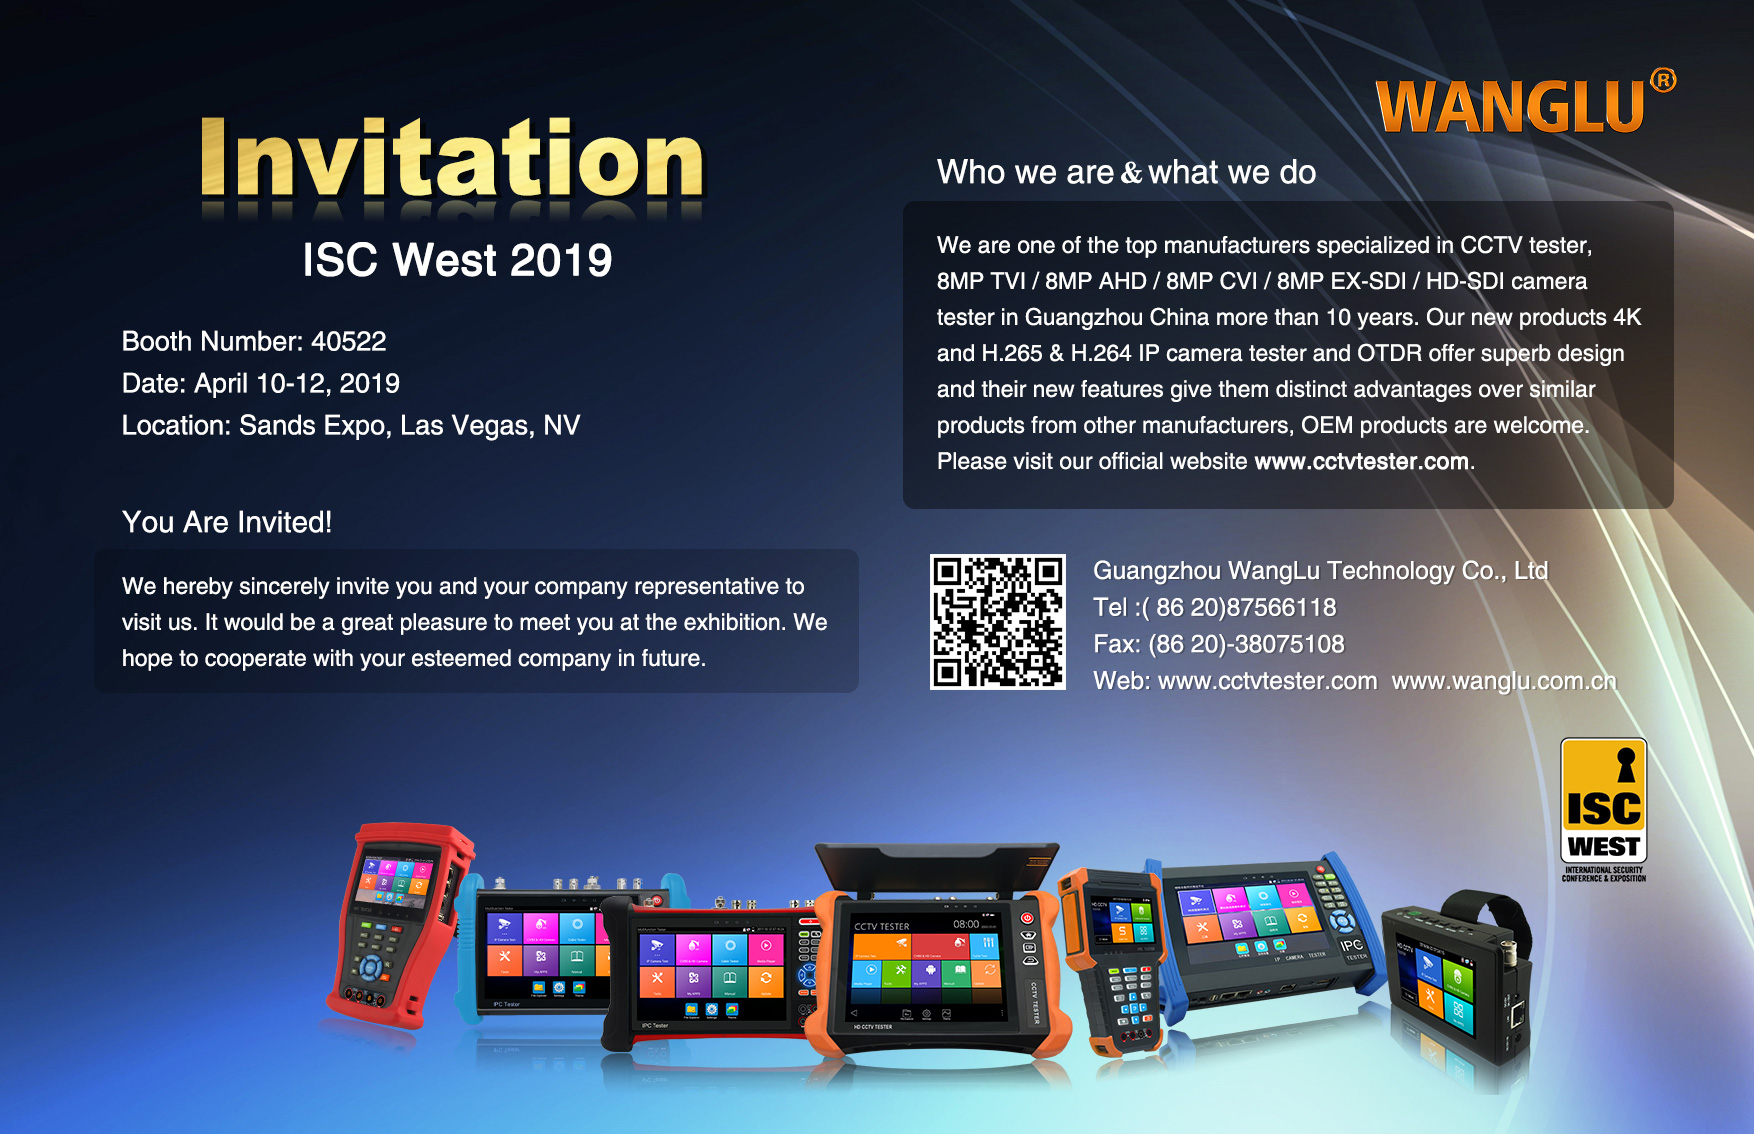 ISC West 2019 Invitation.jpg